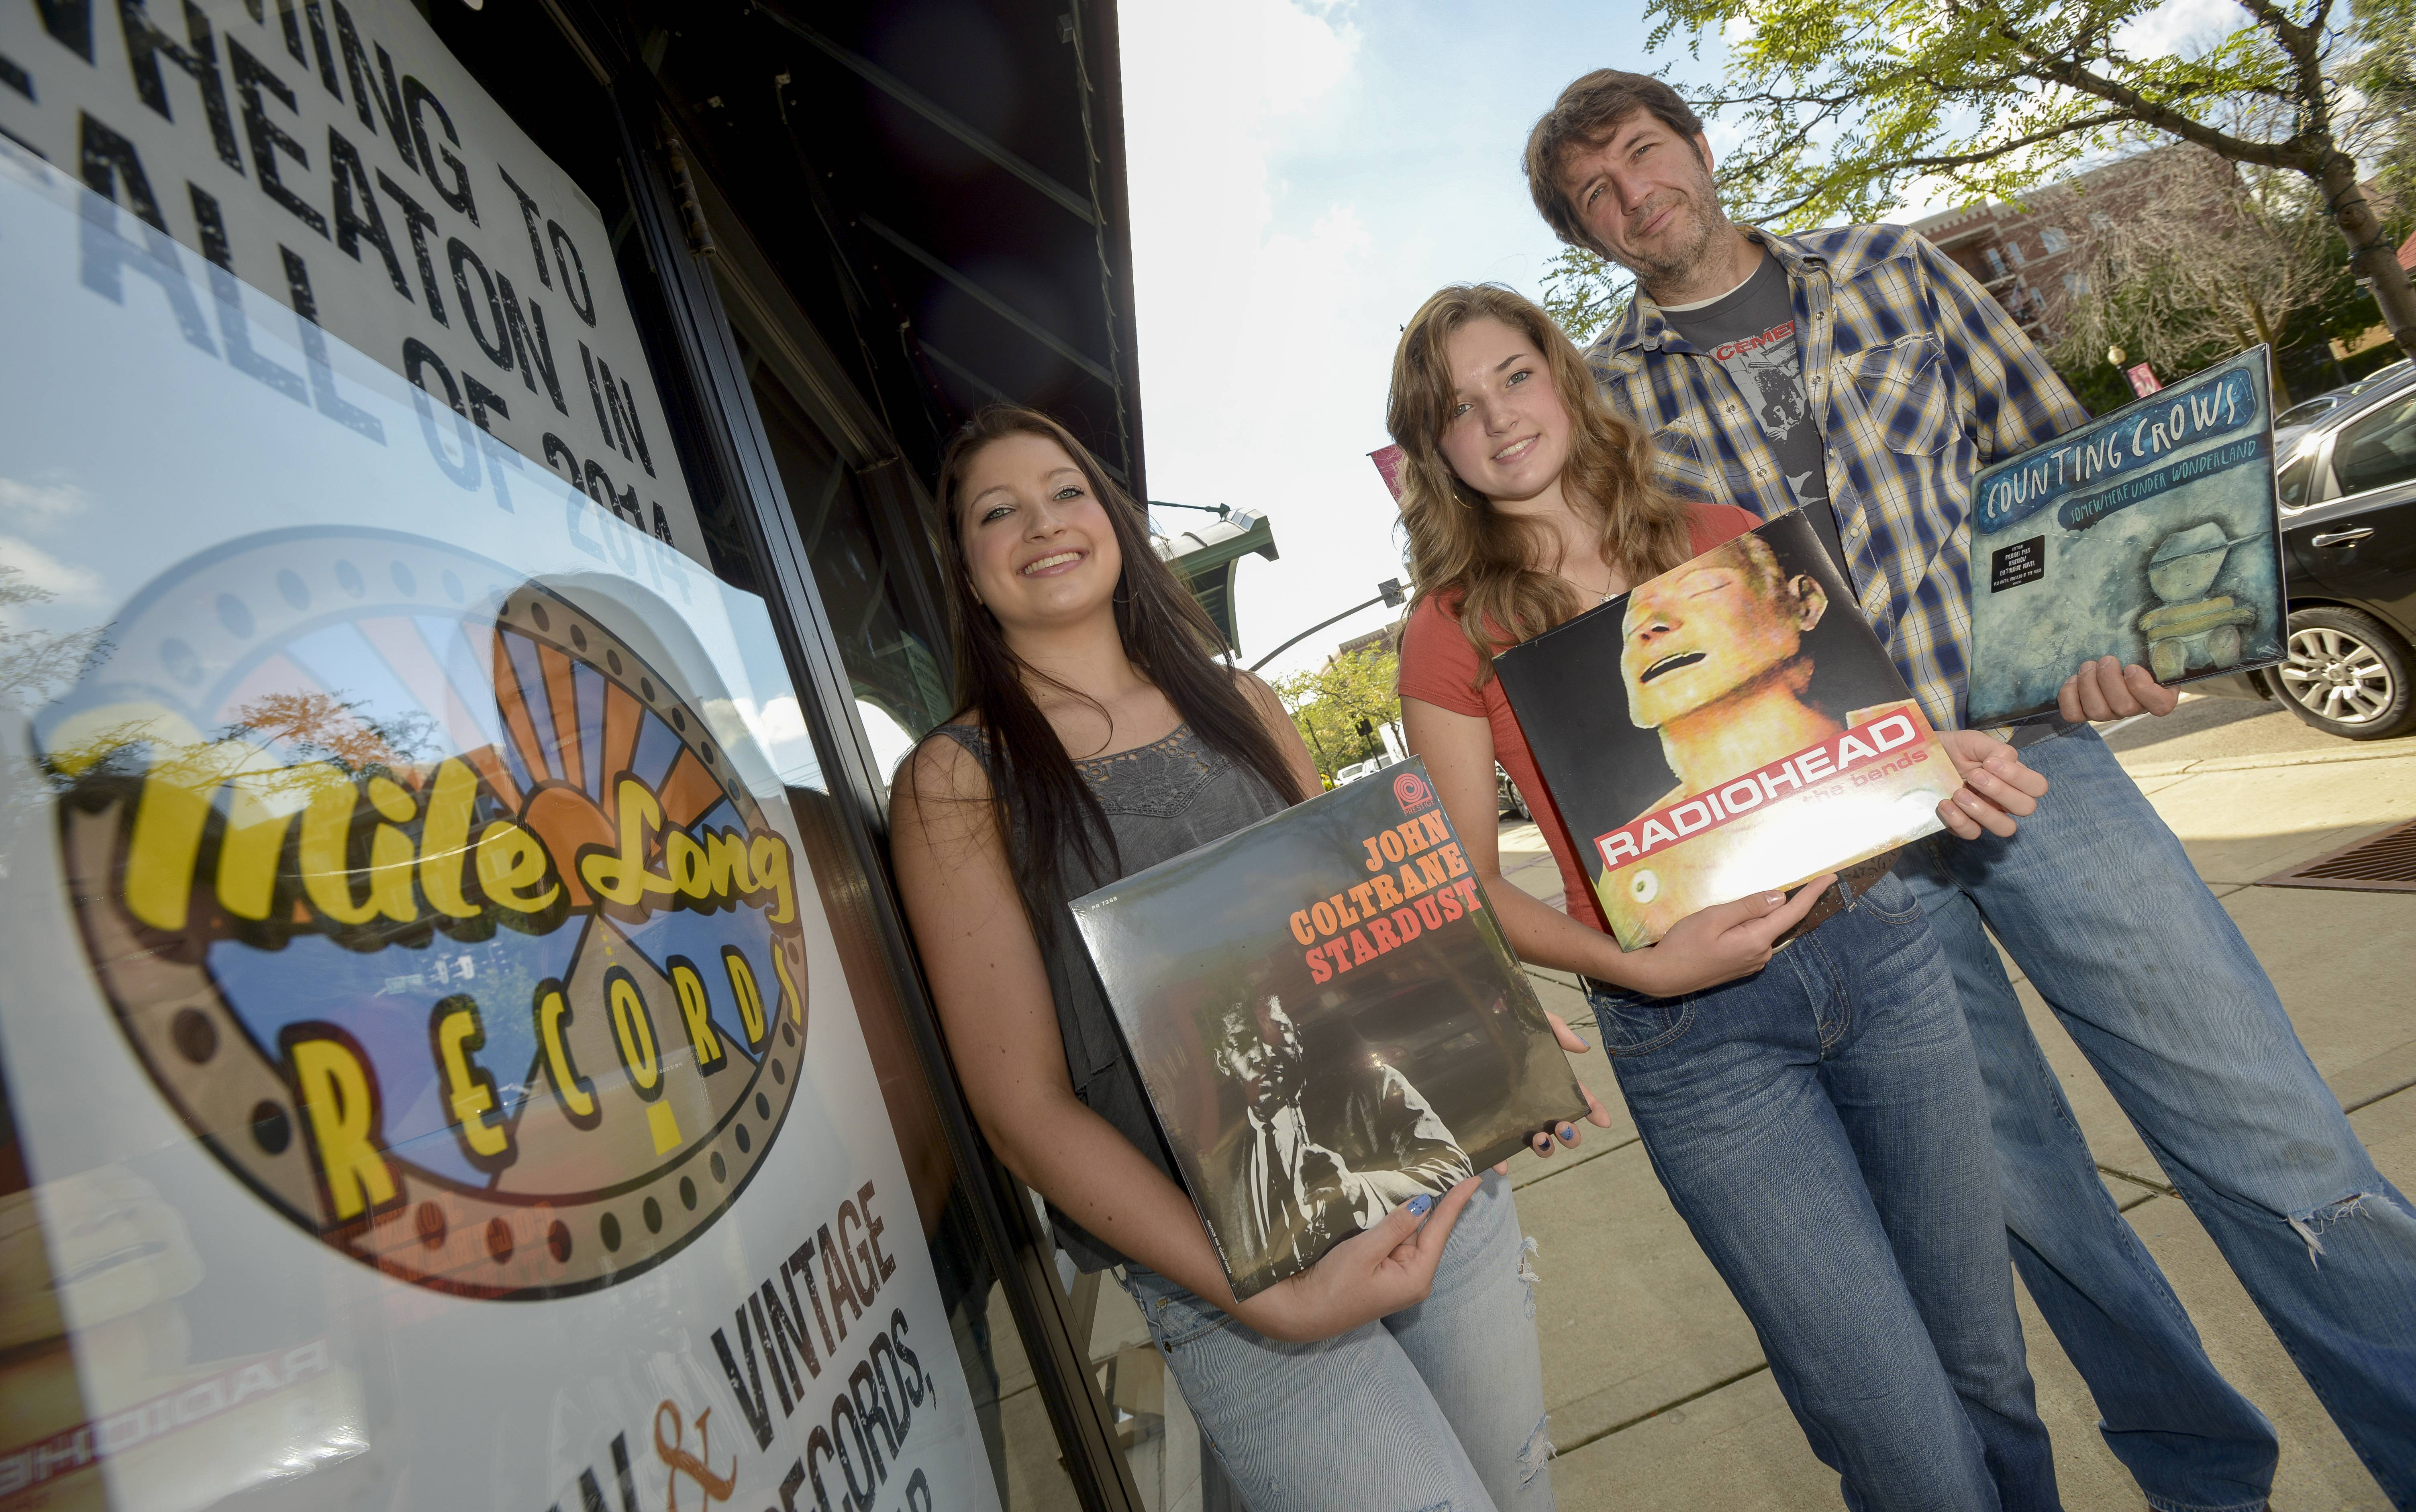 Abby and Allie Paeth hold vinyl albums their father, Michael Paeth, will carry in his Mile Long Records store, expected to open about Oct. 15 in downtown Wheaton.